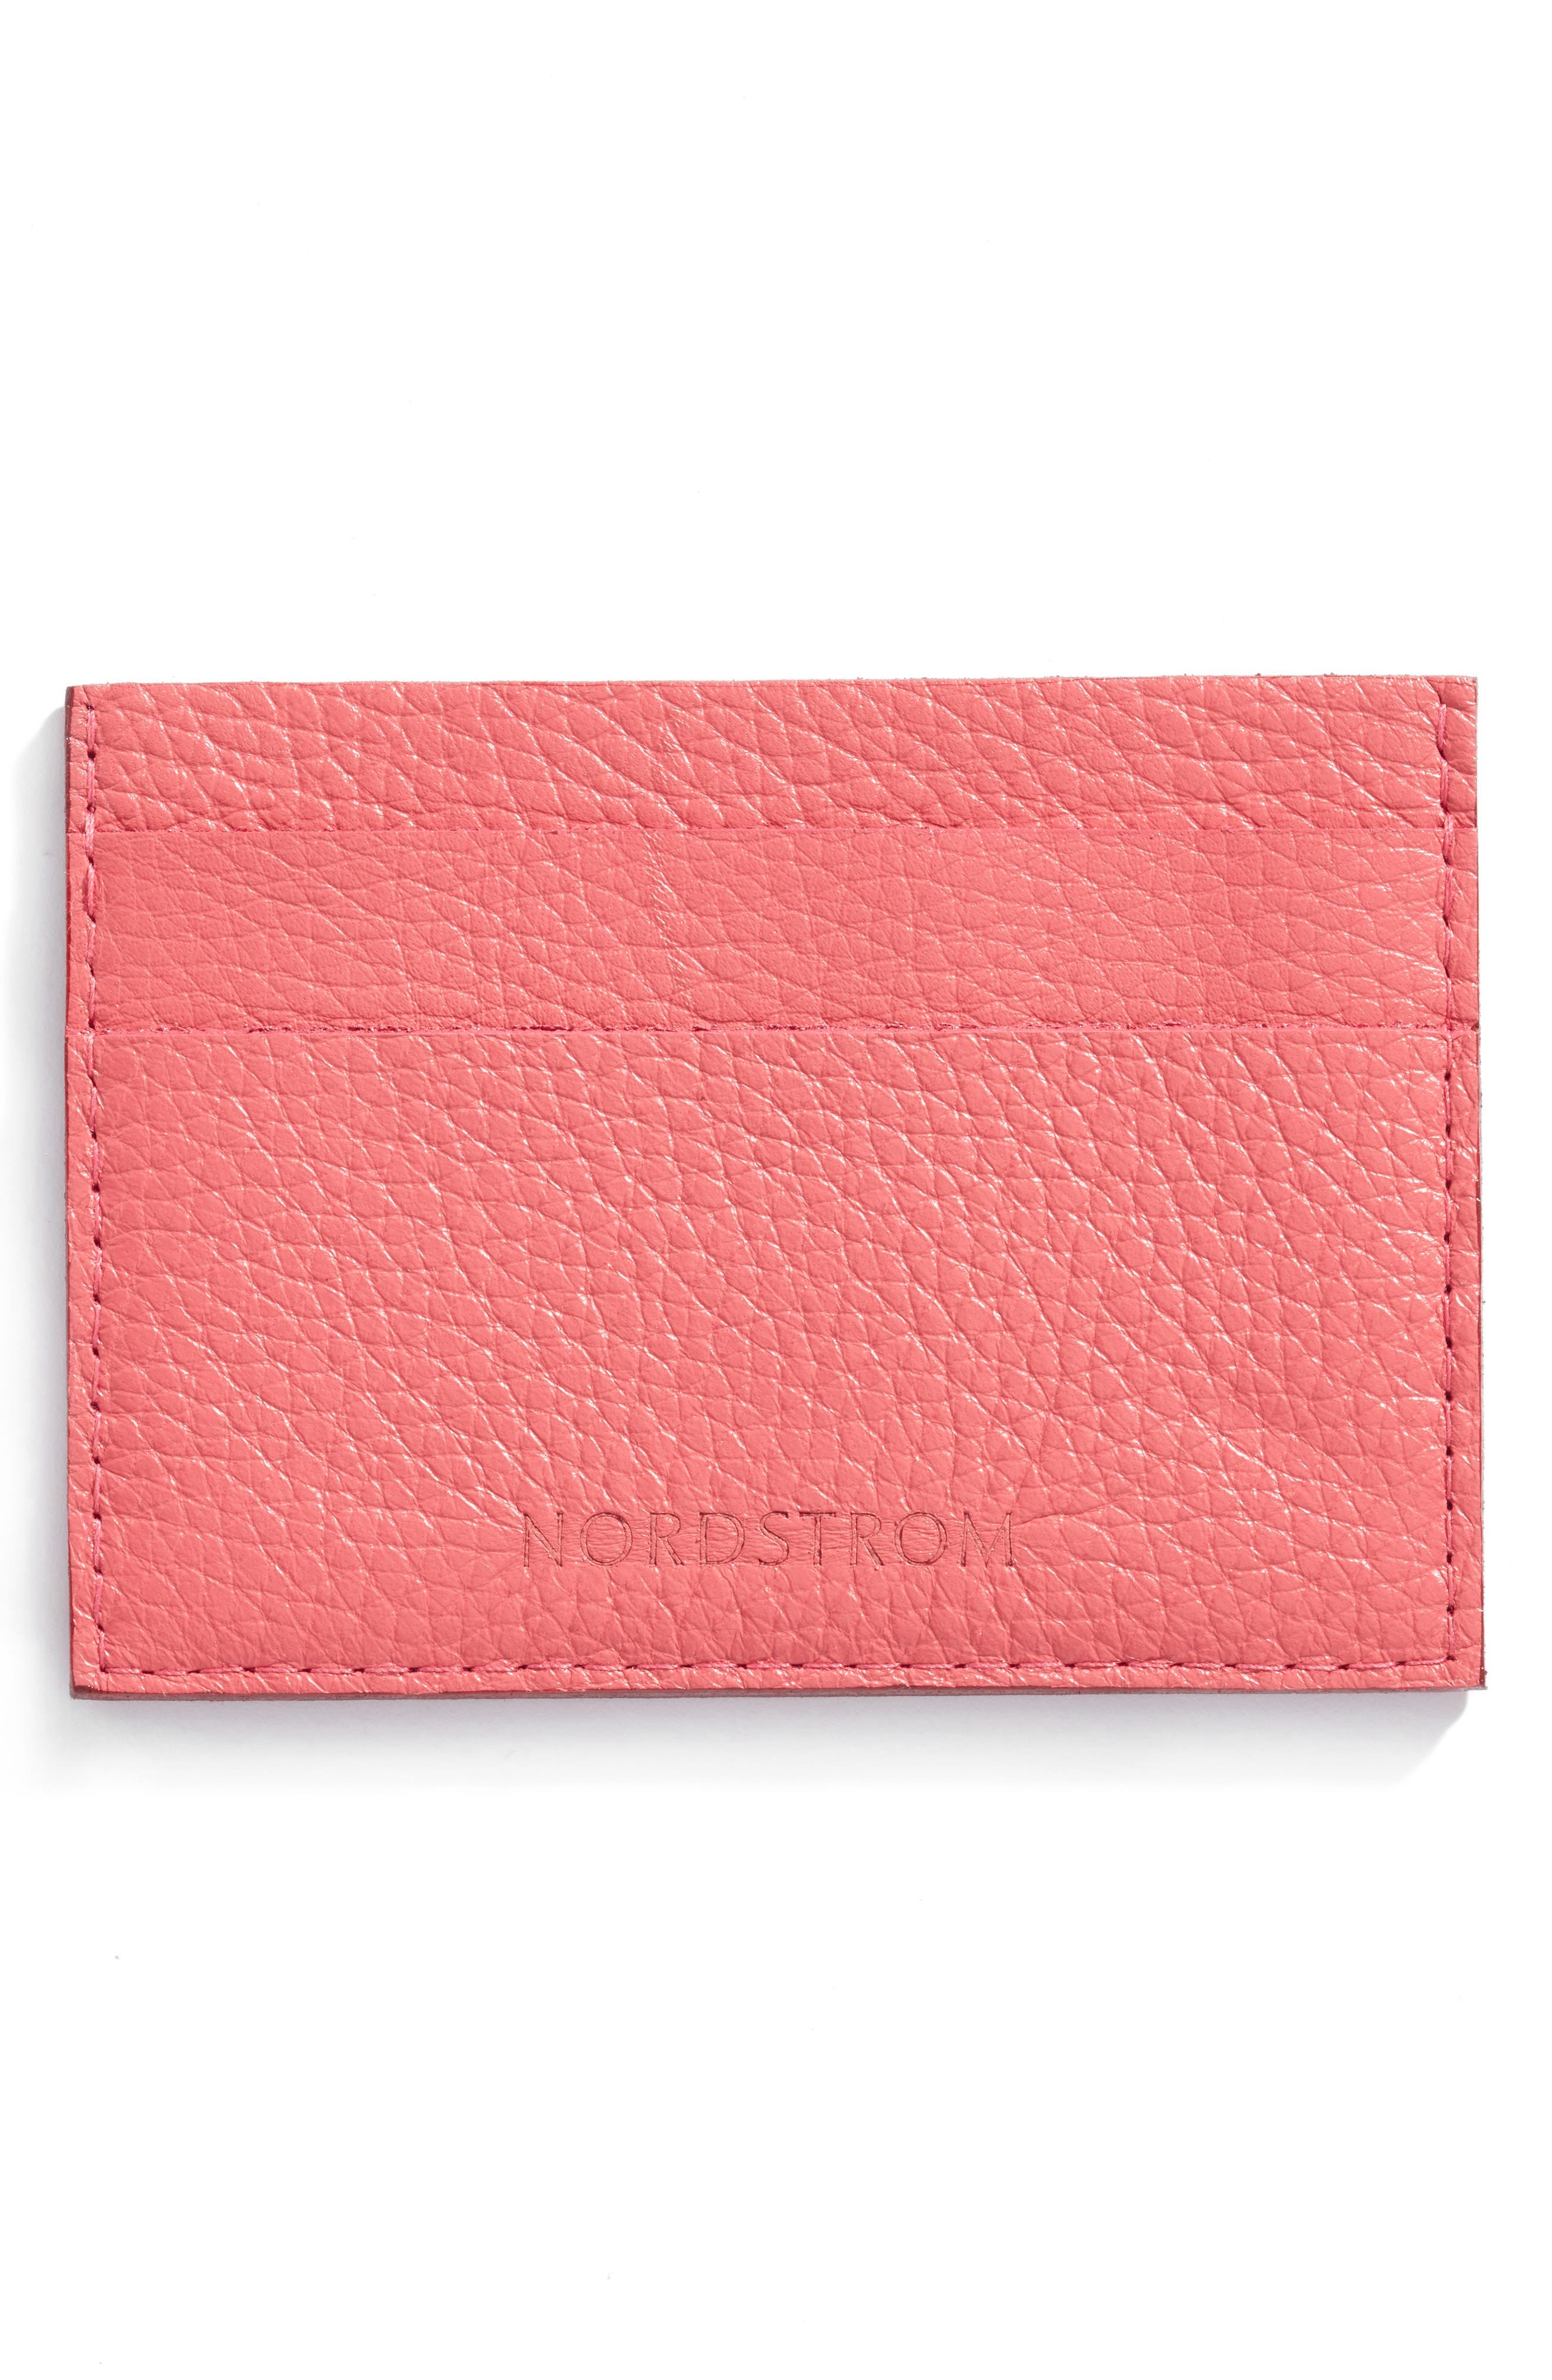 Nordstrom Pink Special Edition Wallet Gift Card